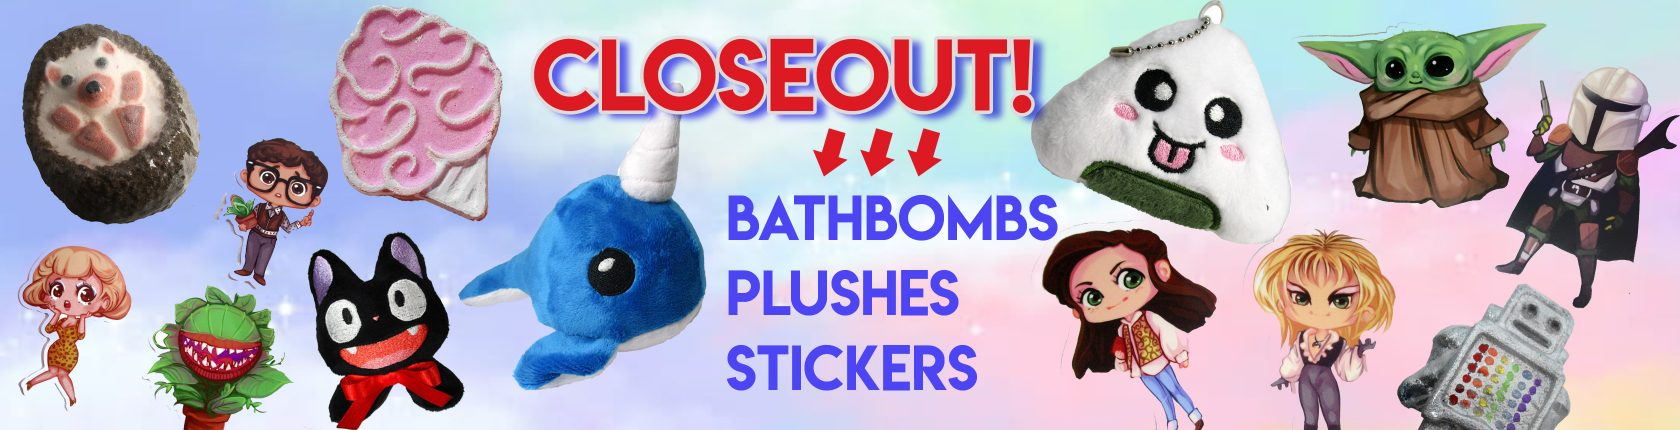 collab closeout sale